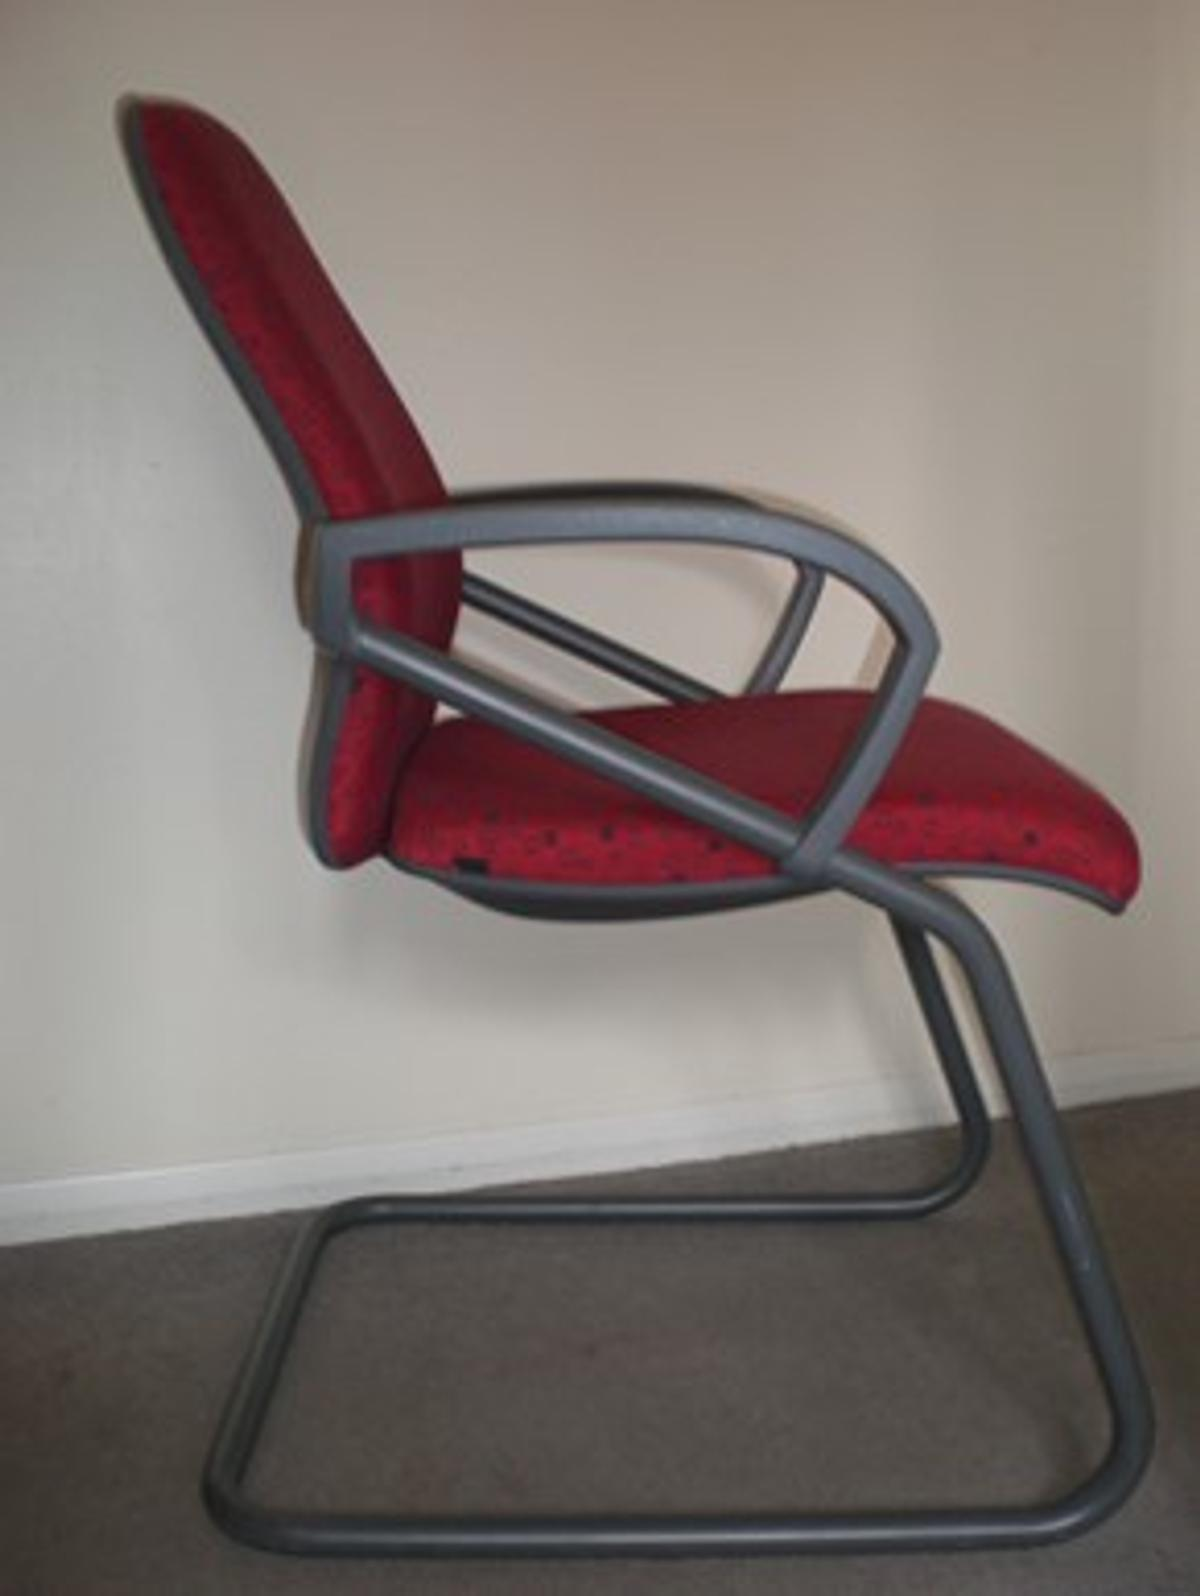 Very Comfy Desk Chair In Se3 London For 20 00 For Sale Shpock